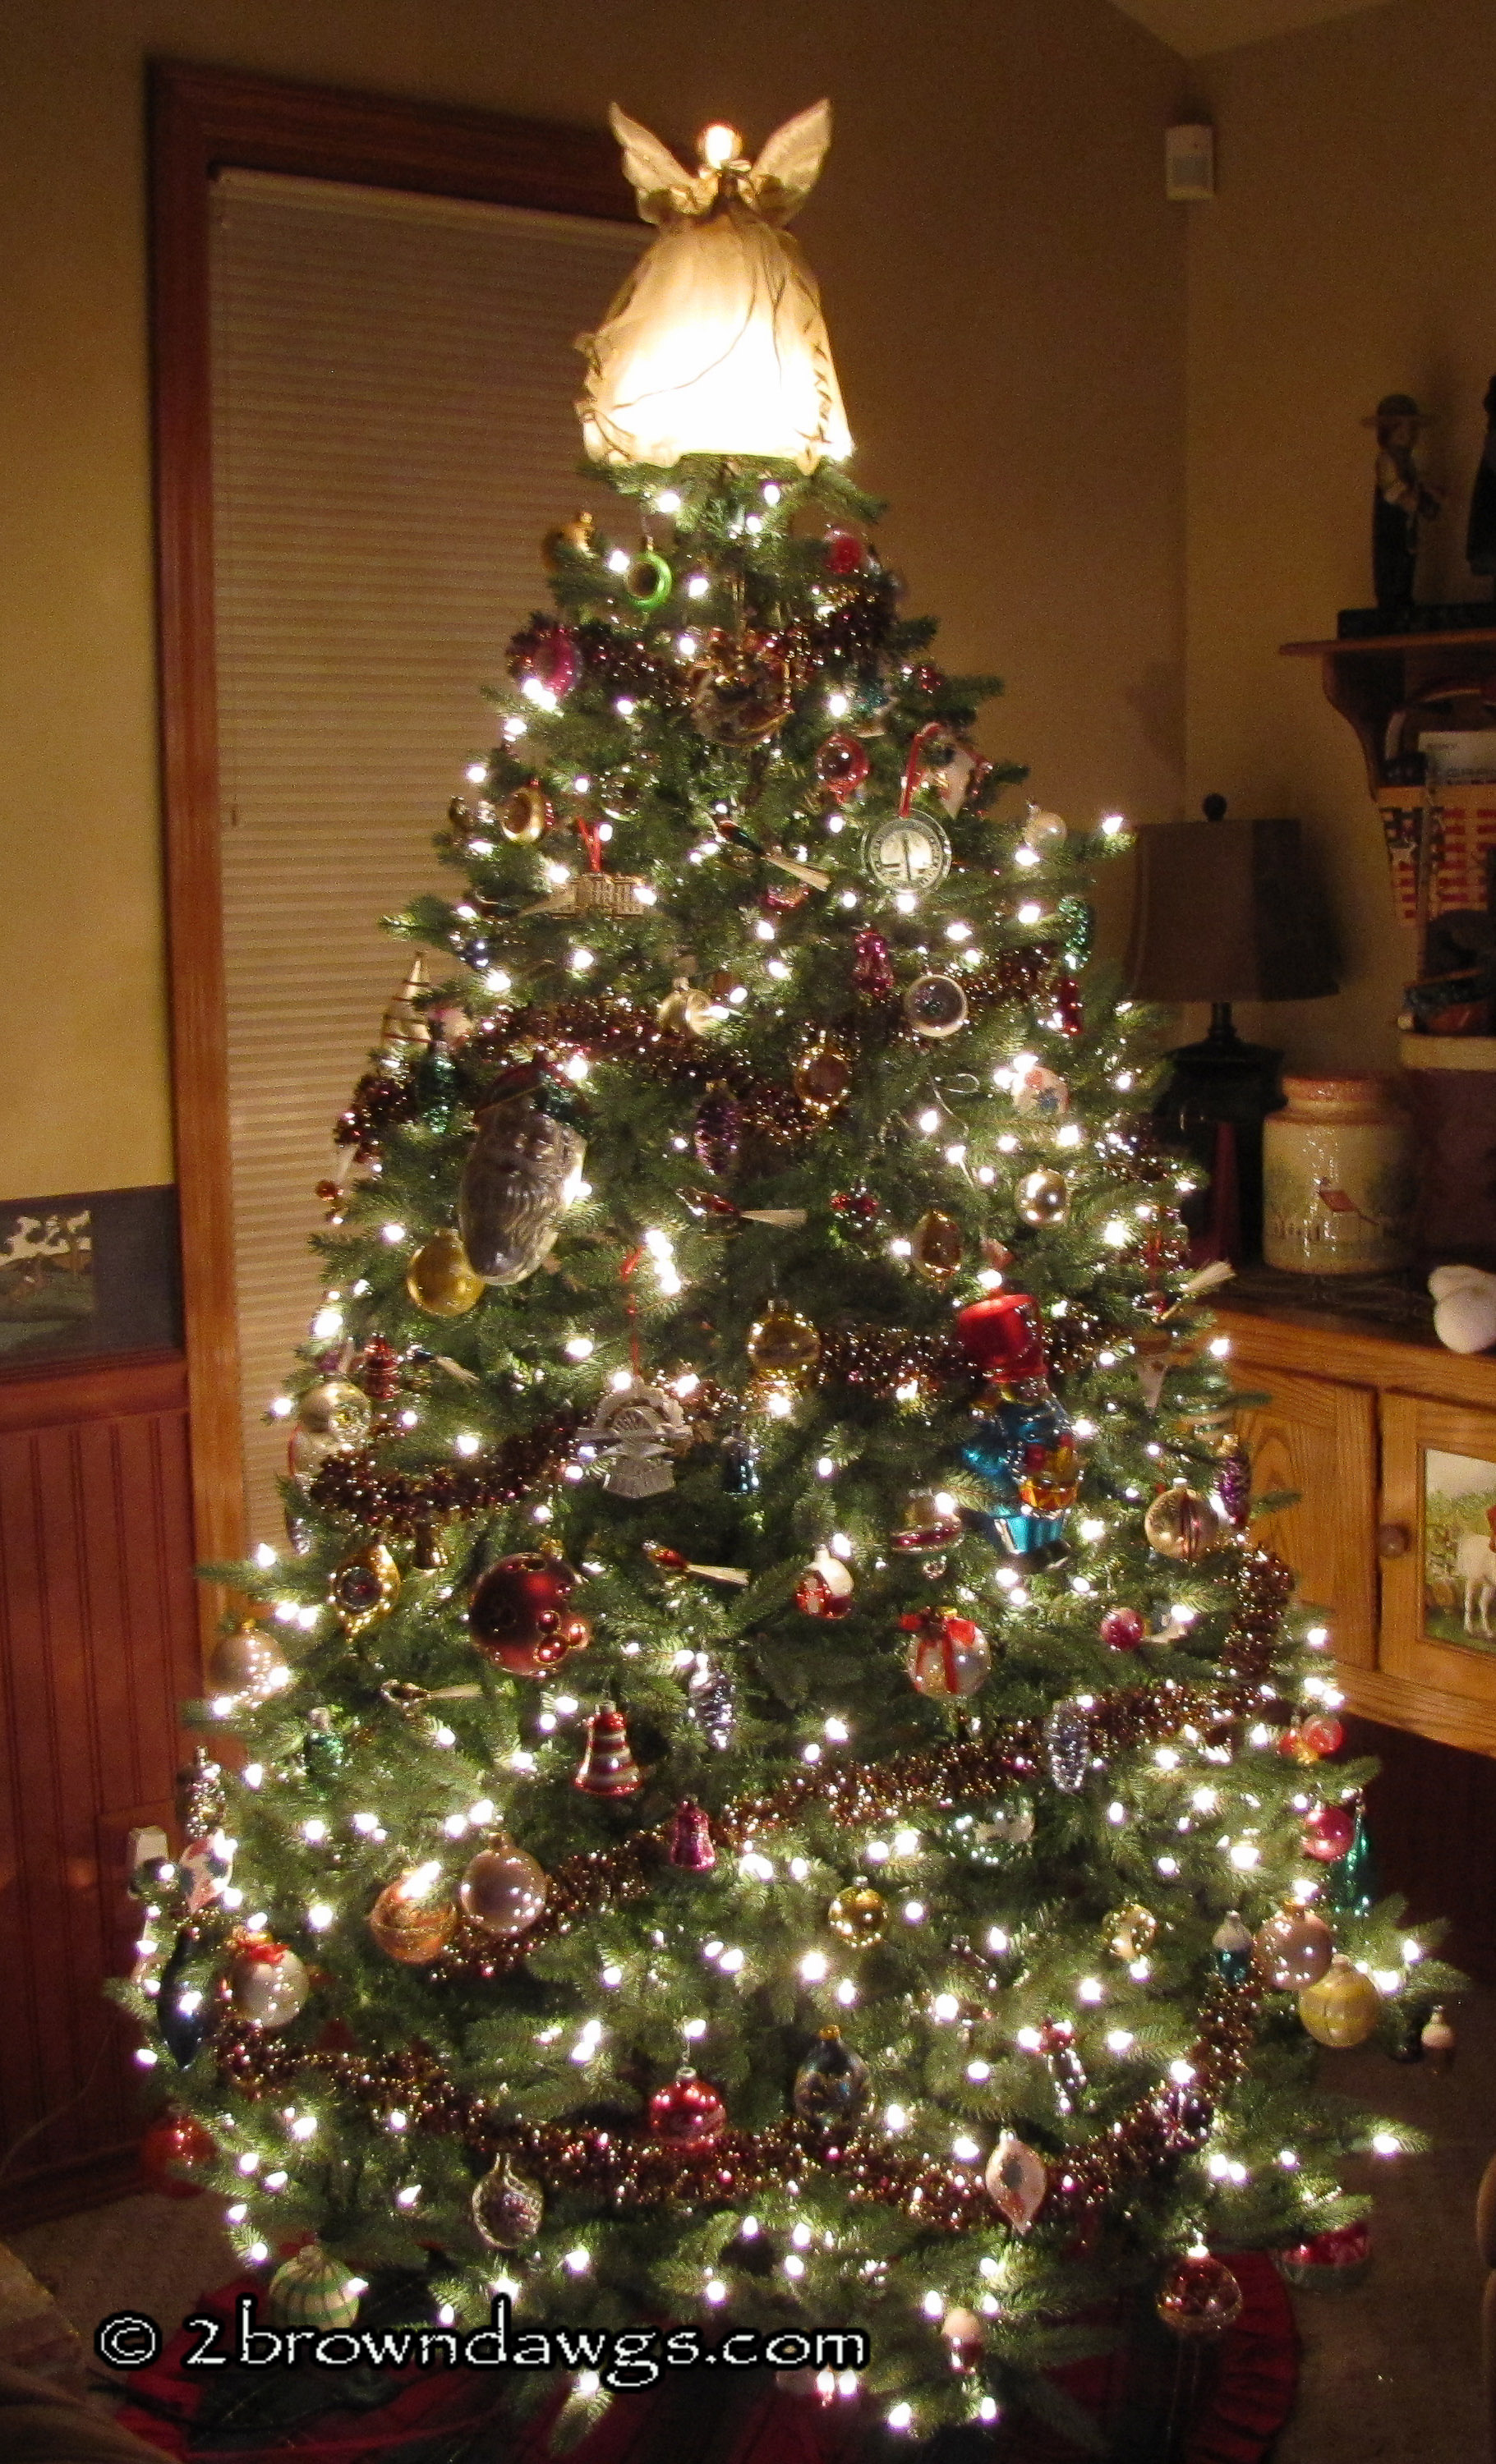 Irish Christmas Tree Traditions